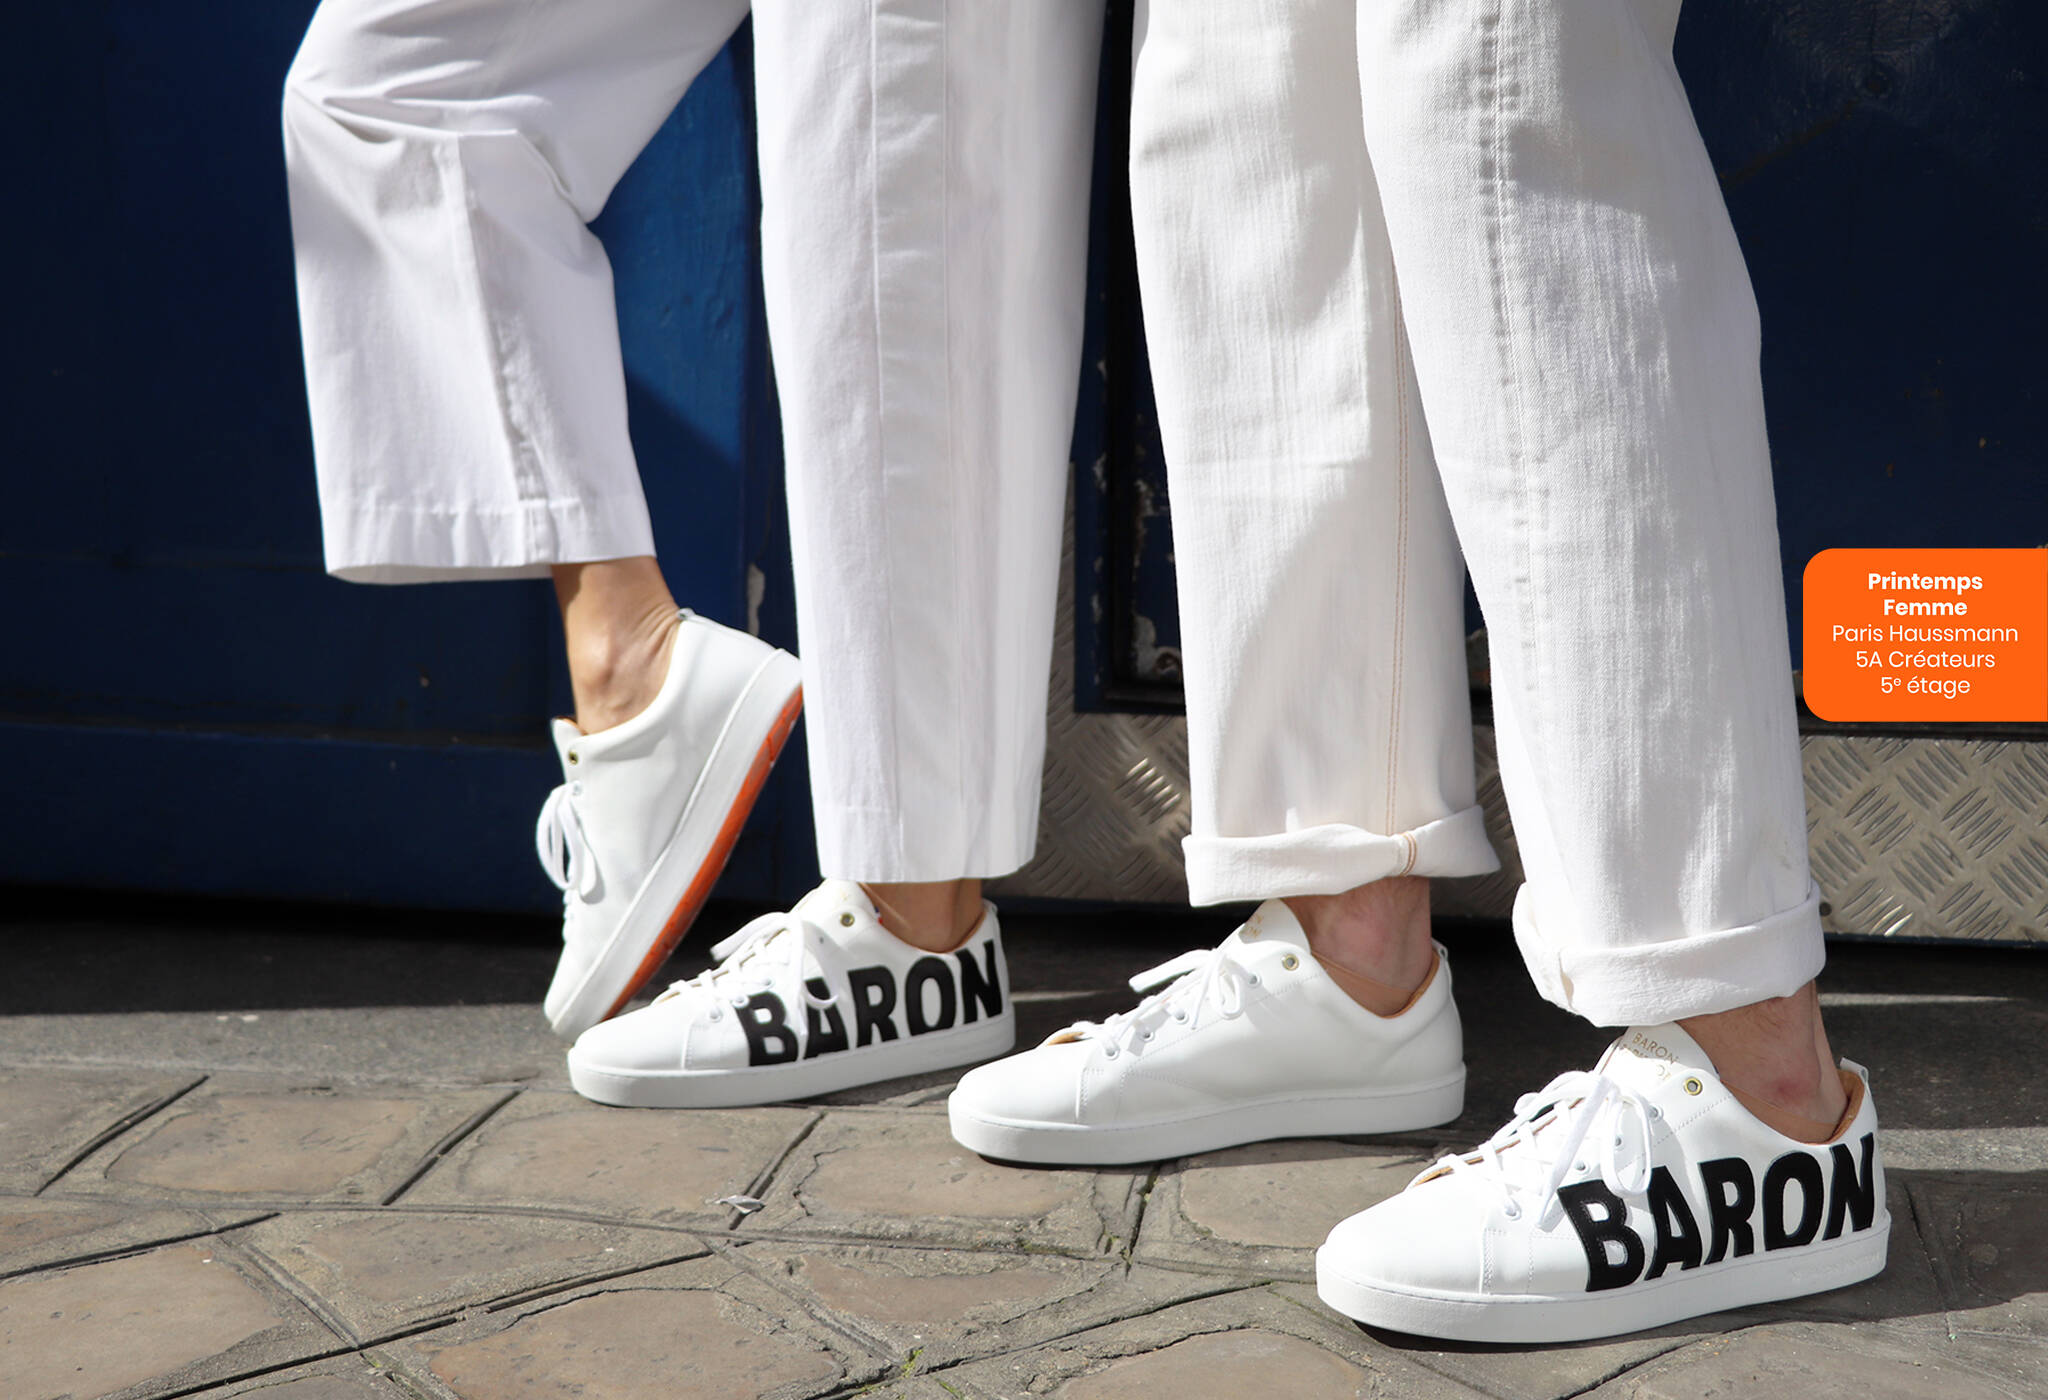 Sneaker New Baron Papillon Paris Collection